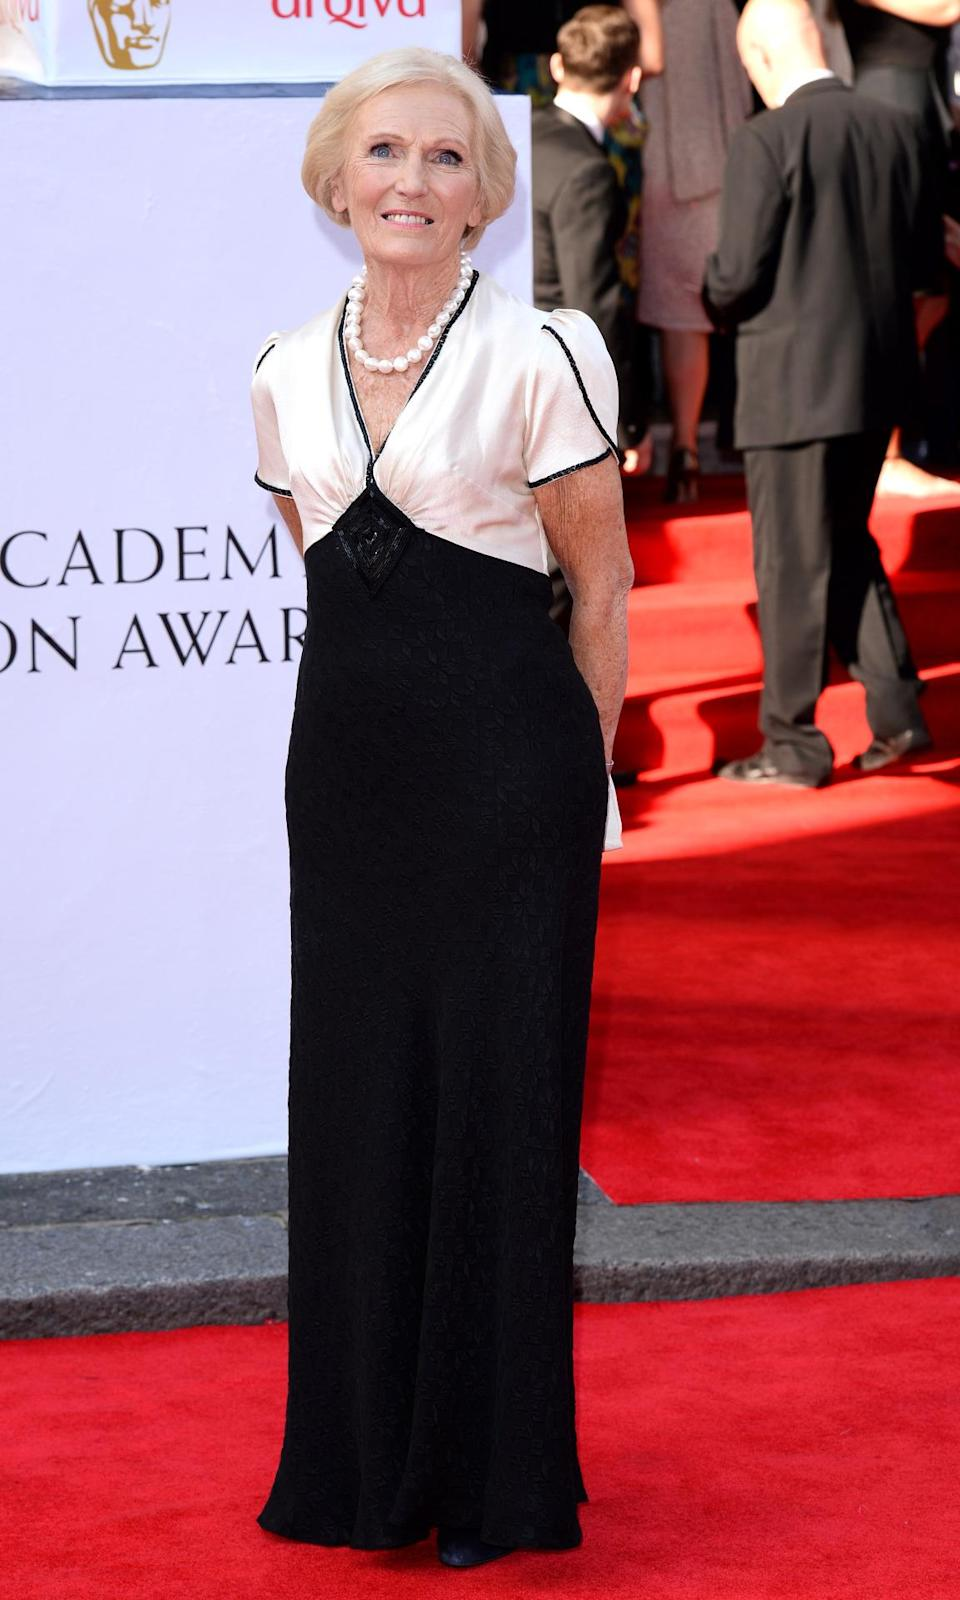 Mary looked elegant in a floor-length monochrome dress at the 2014 BAFTAs. [Photo: Getty]